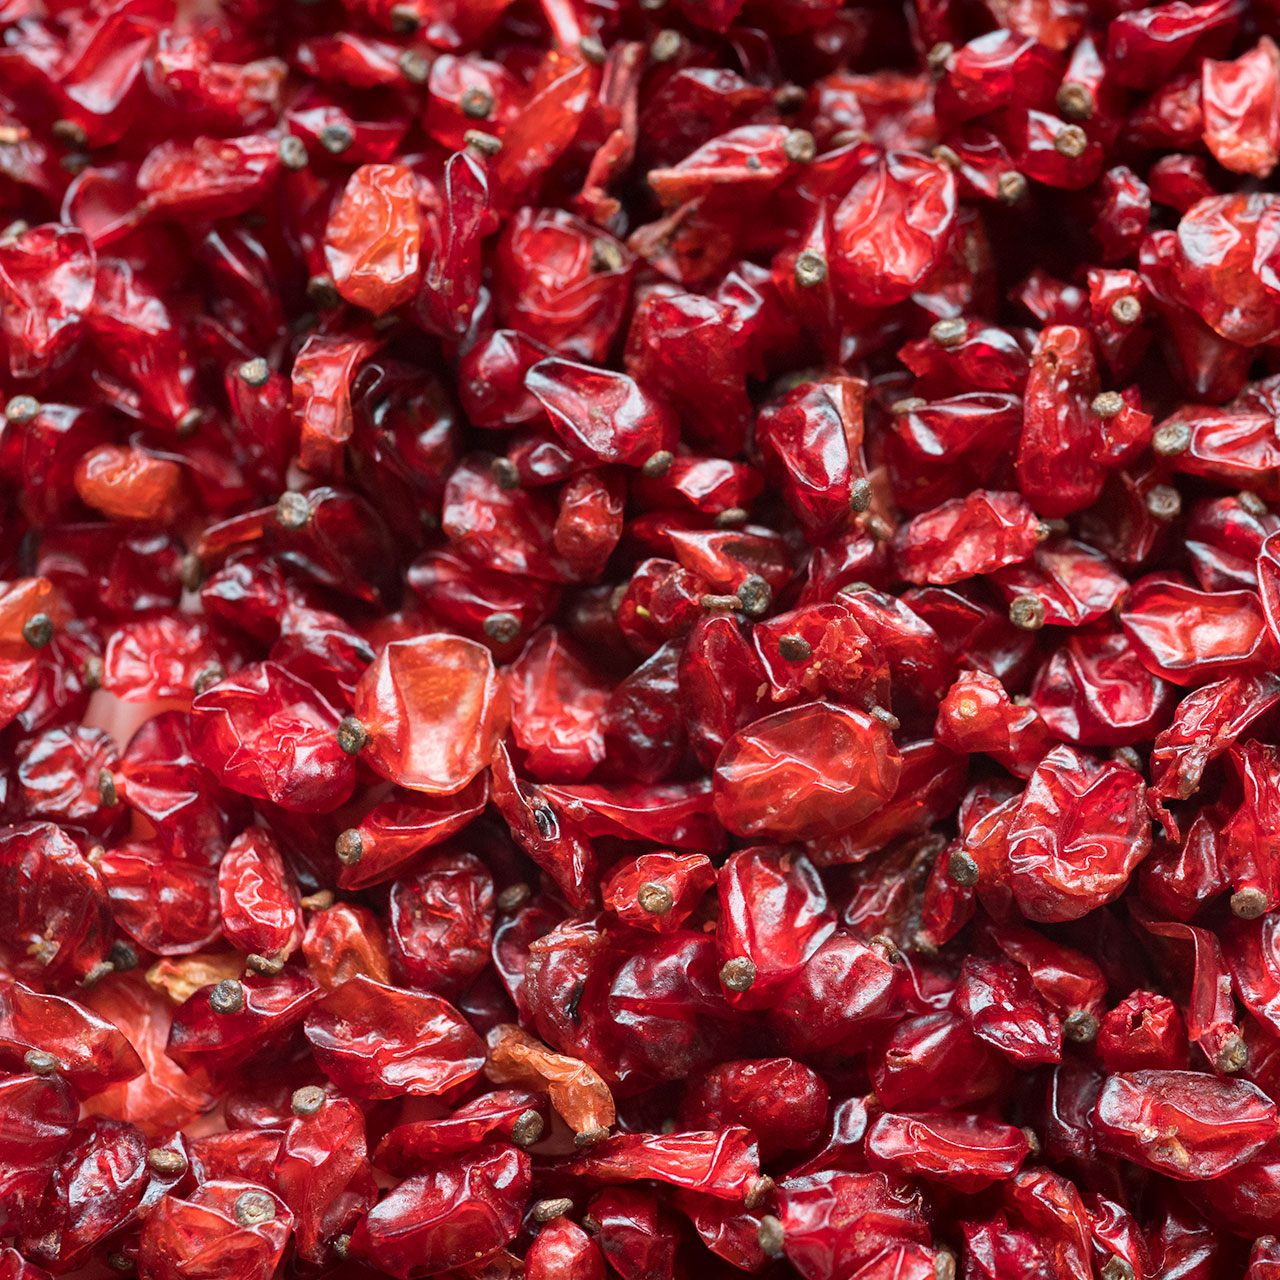 Dried Barberries